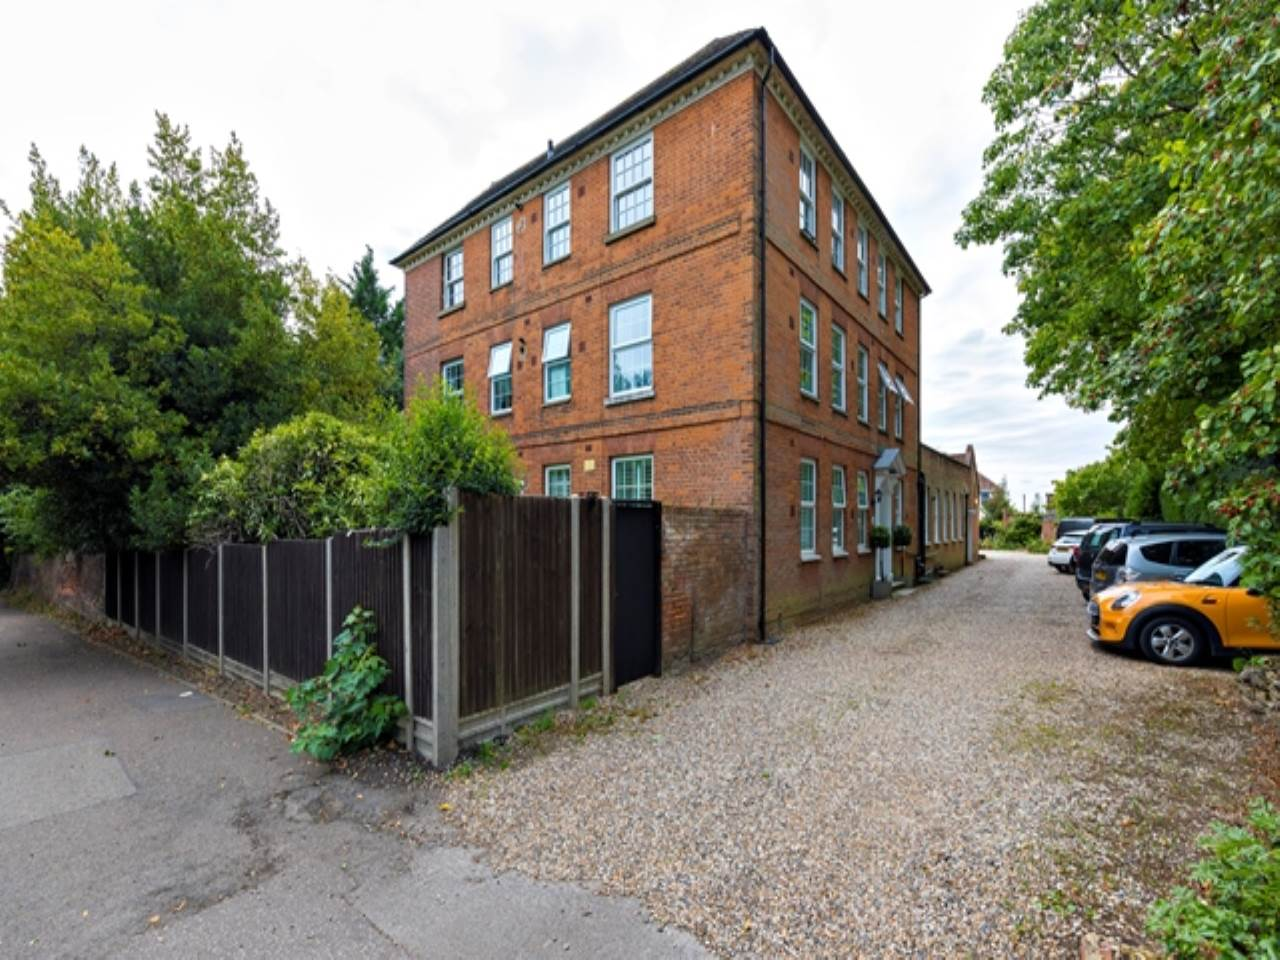 2 bed flat for sale in Spriggs Oak, Palmers Hill - Property Image 1